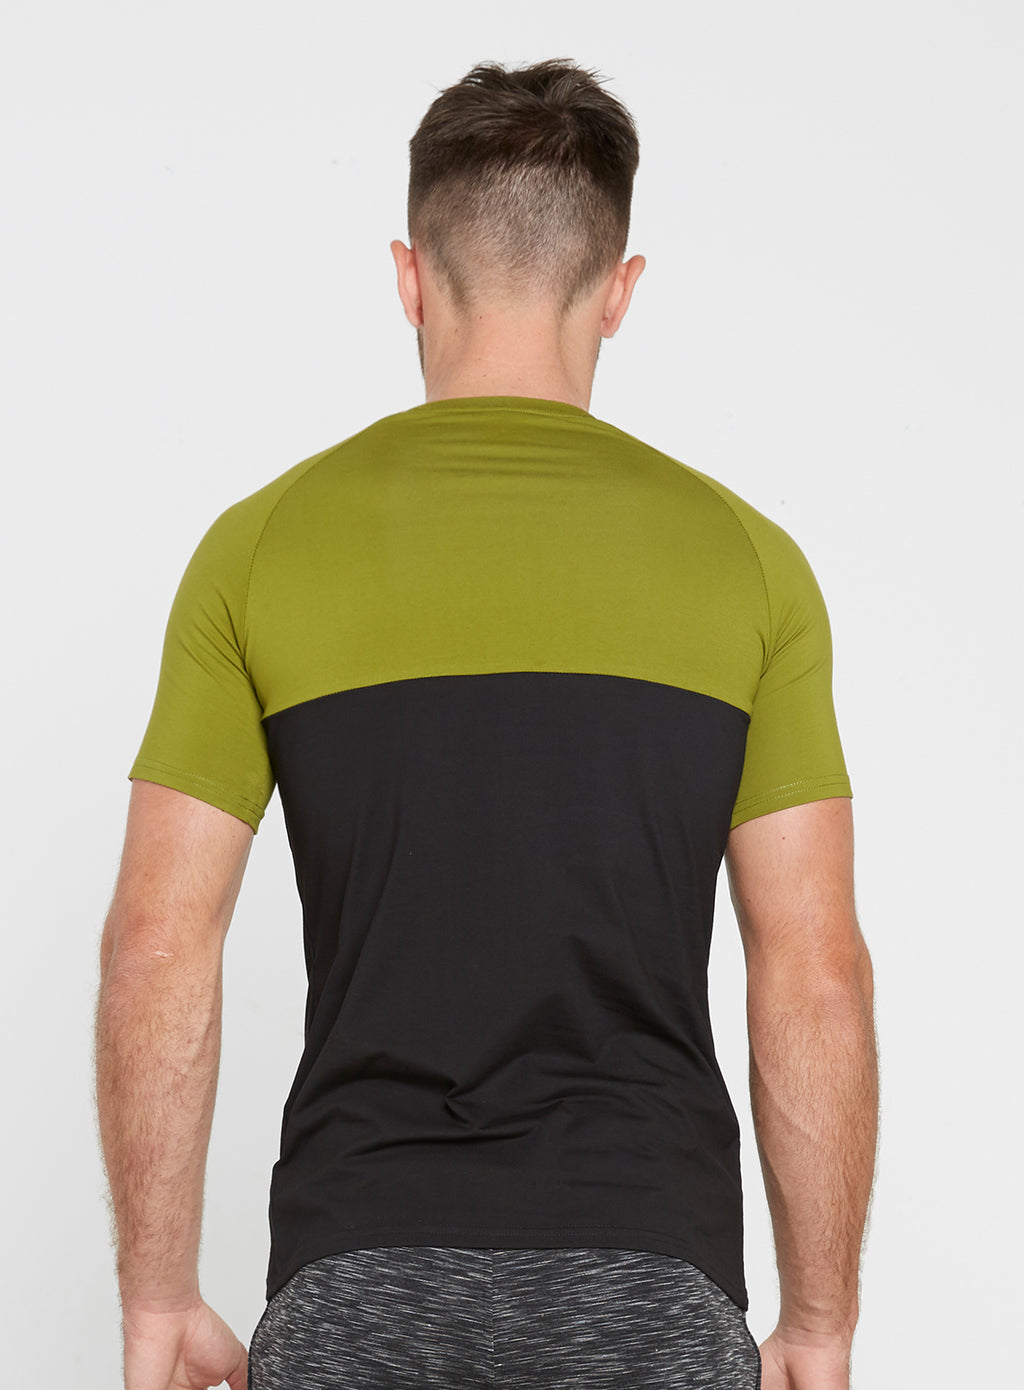 Gym Monkee - Black and Khaki Tee REAR